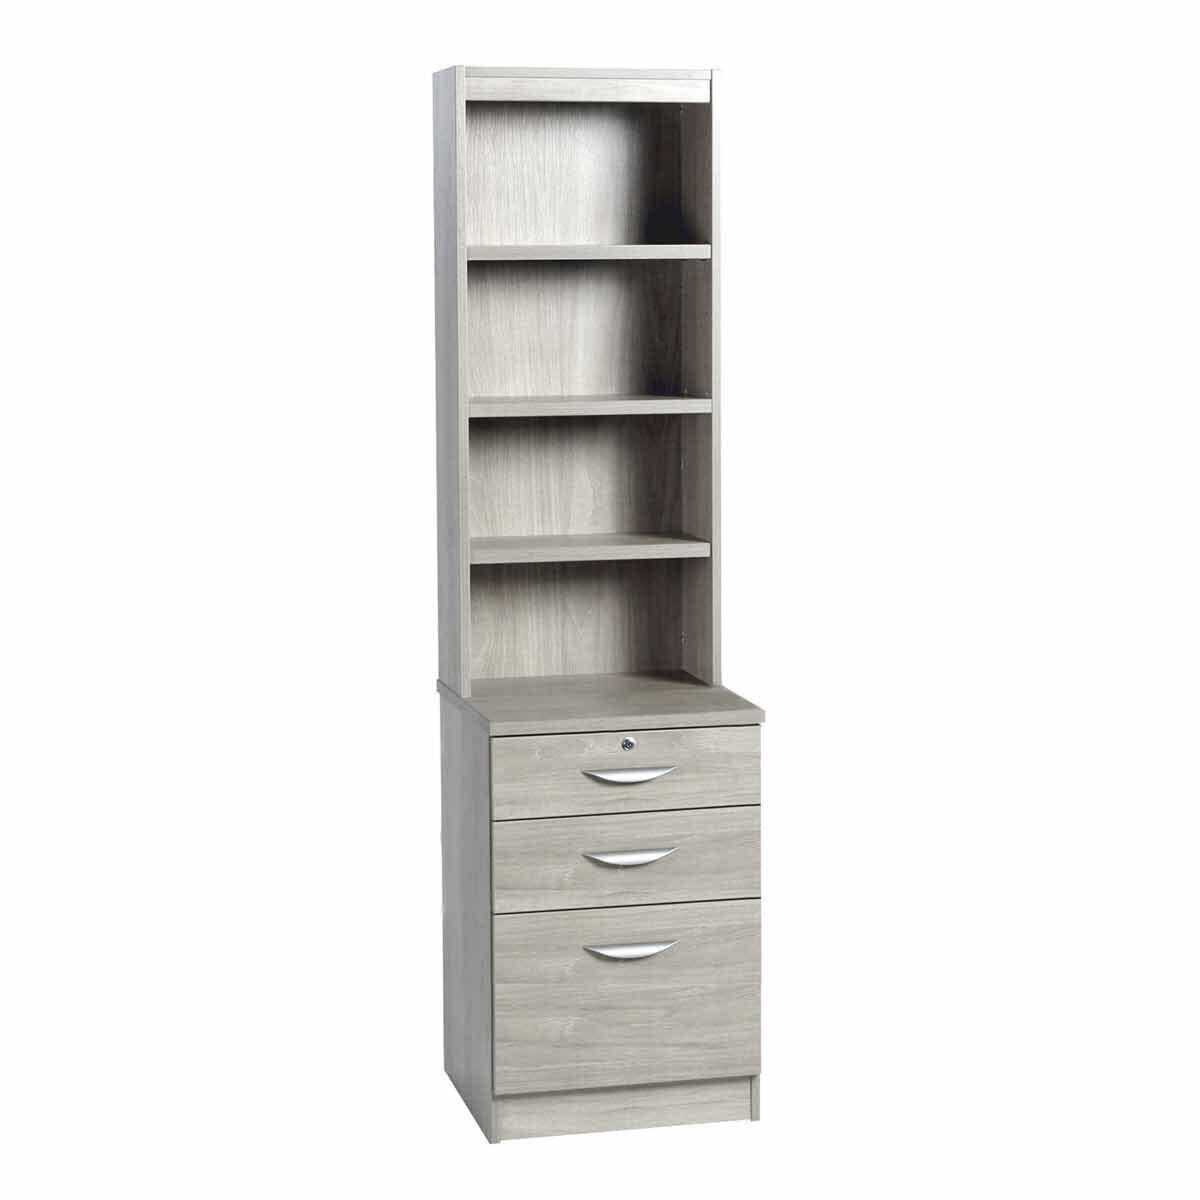 R White 3 Drawer Filing Cabinet with Overshelving Grey Nebraska